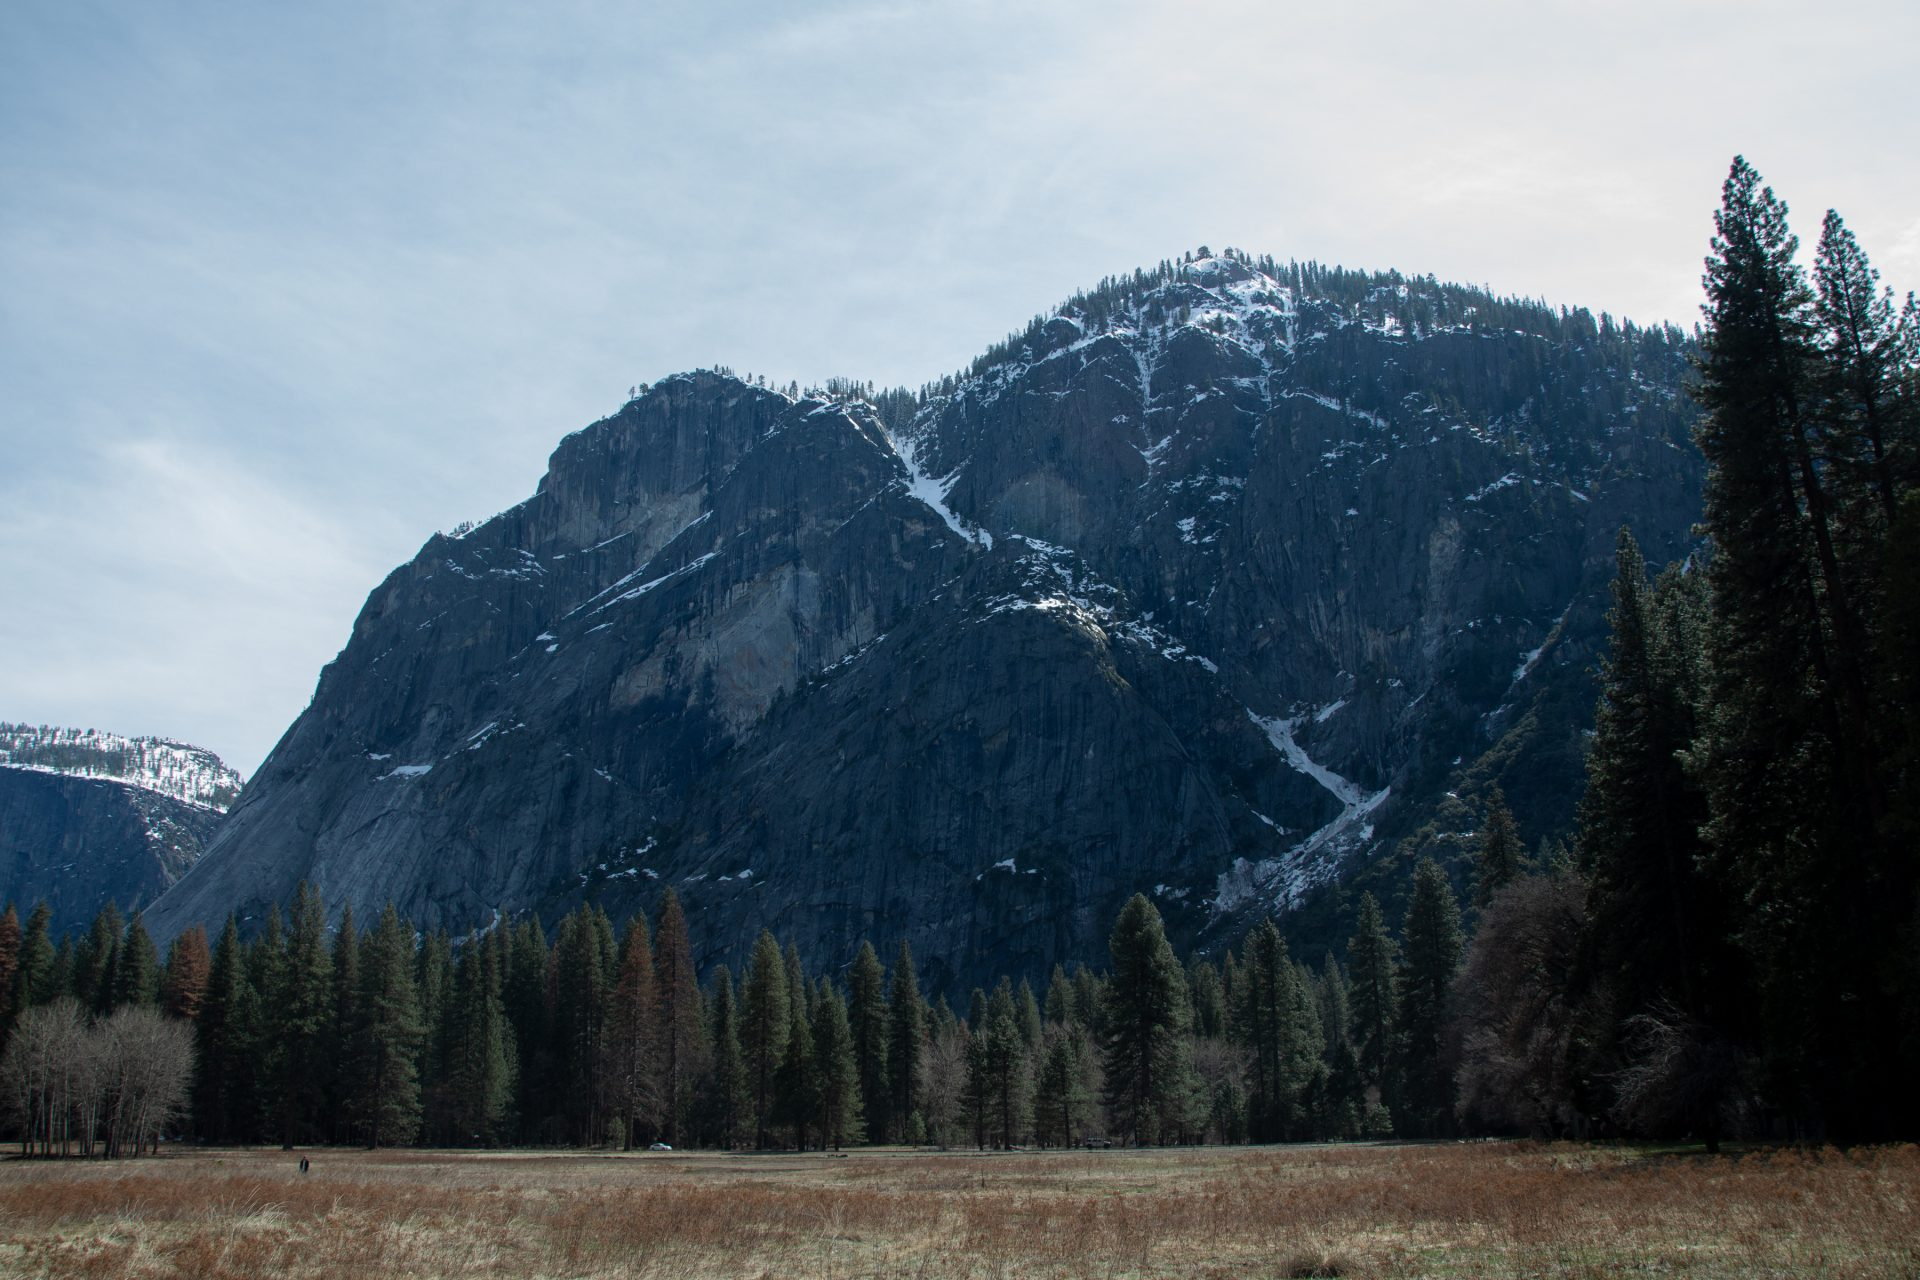 Large Ice Capped Mountains Behind Coniferous Forest